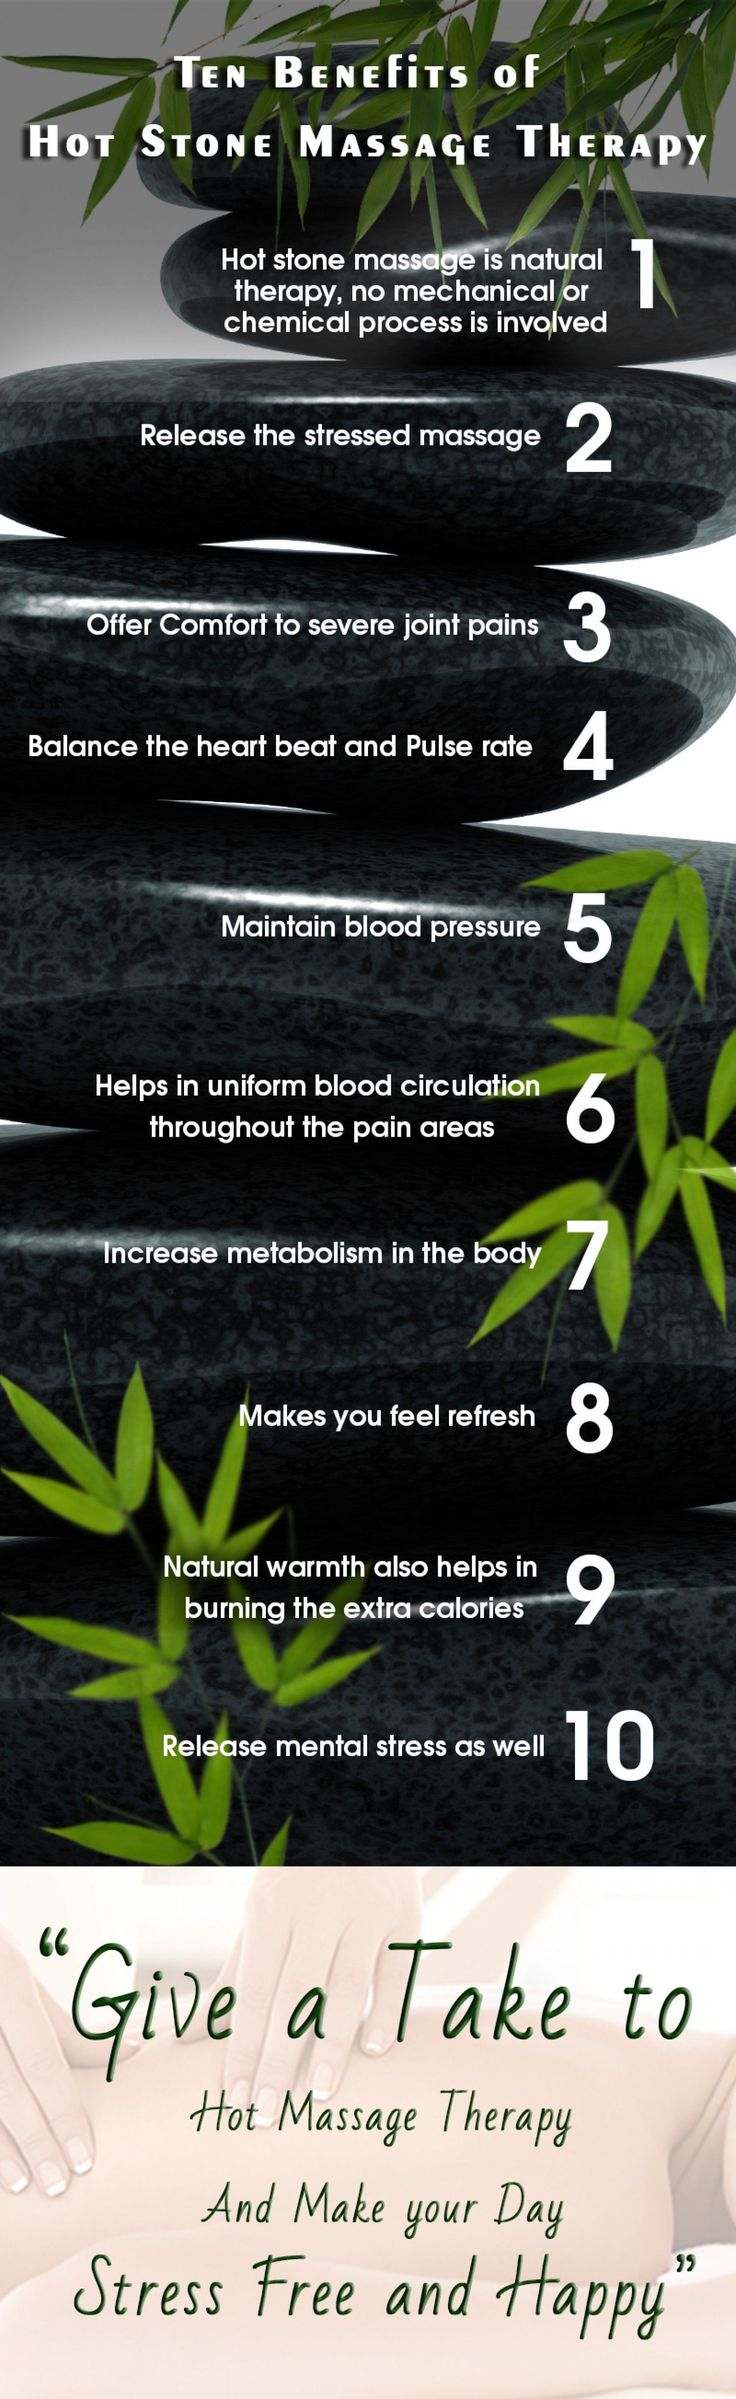 Ten Benefits of Hot Stone Massage Therapy Infographic